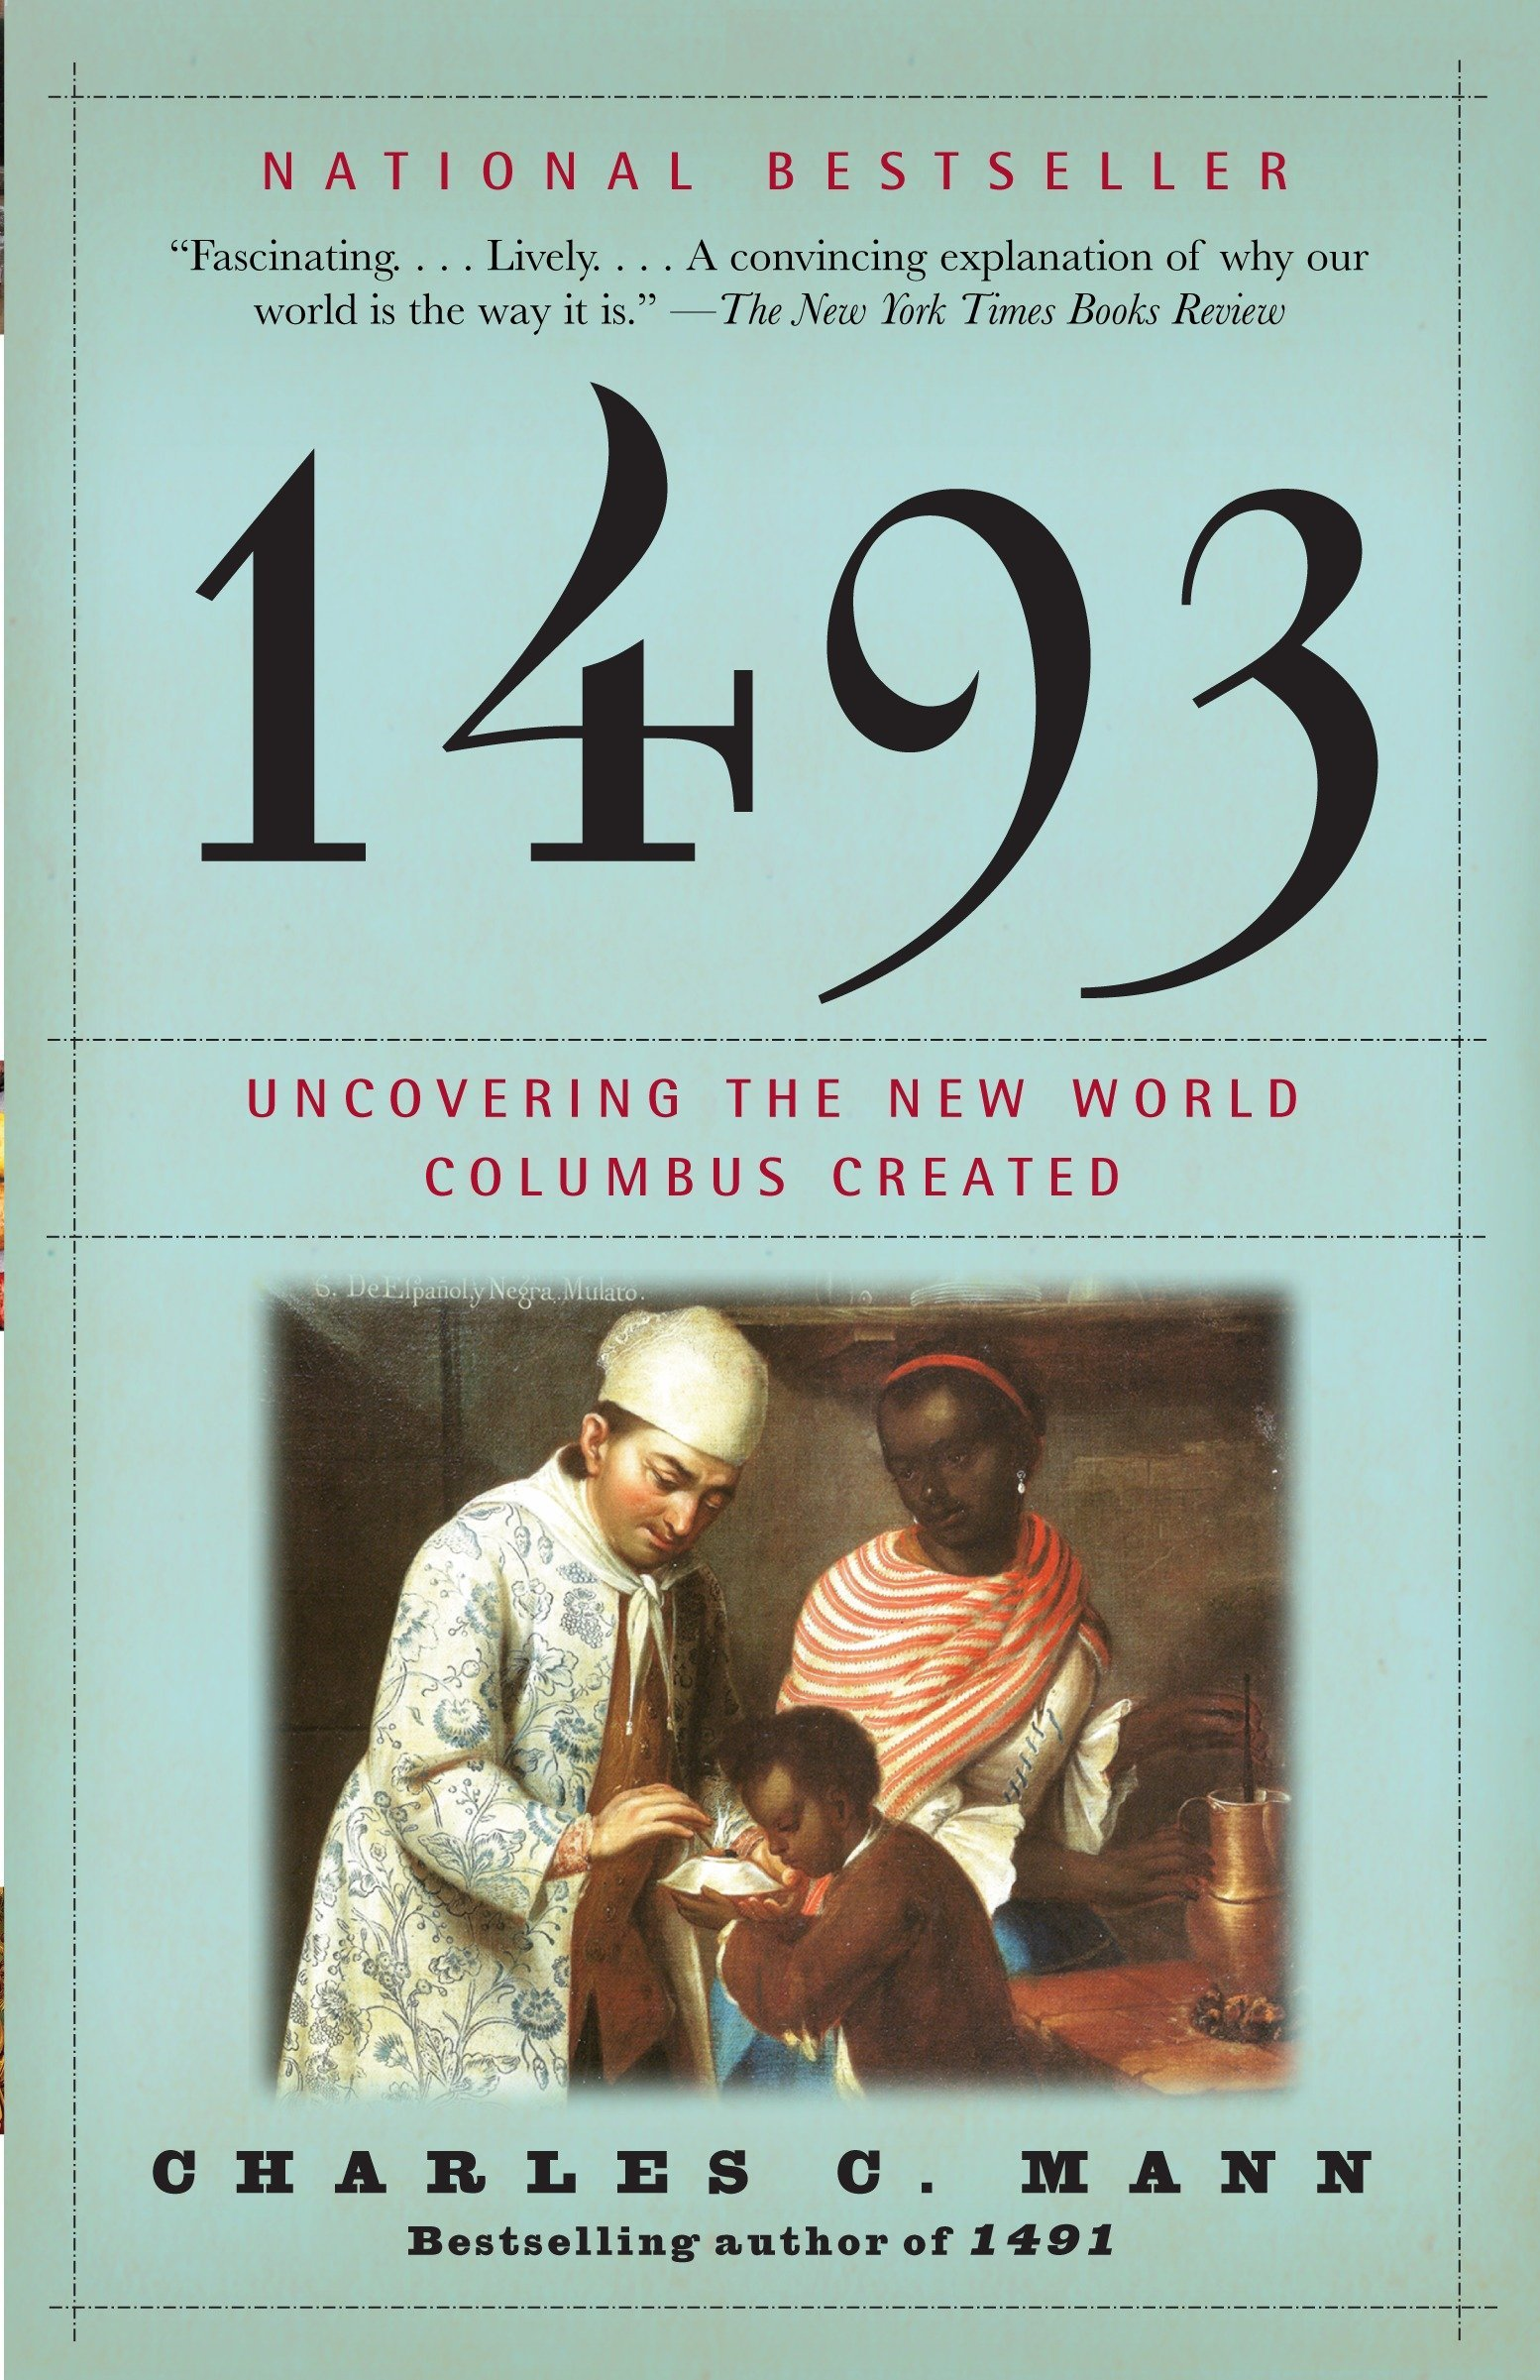 1493: Uncovering the New World Columbus Created: Charles C. Mann:  9780307278241: Amazon.com: Books